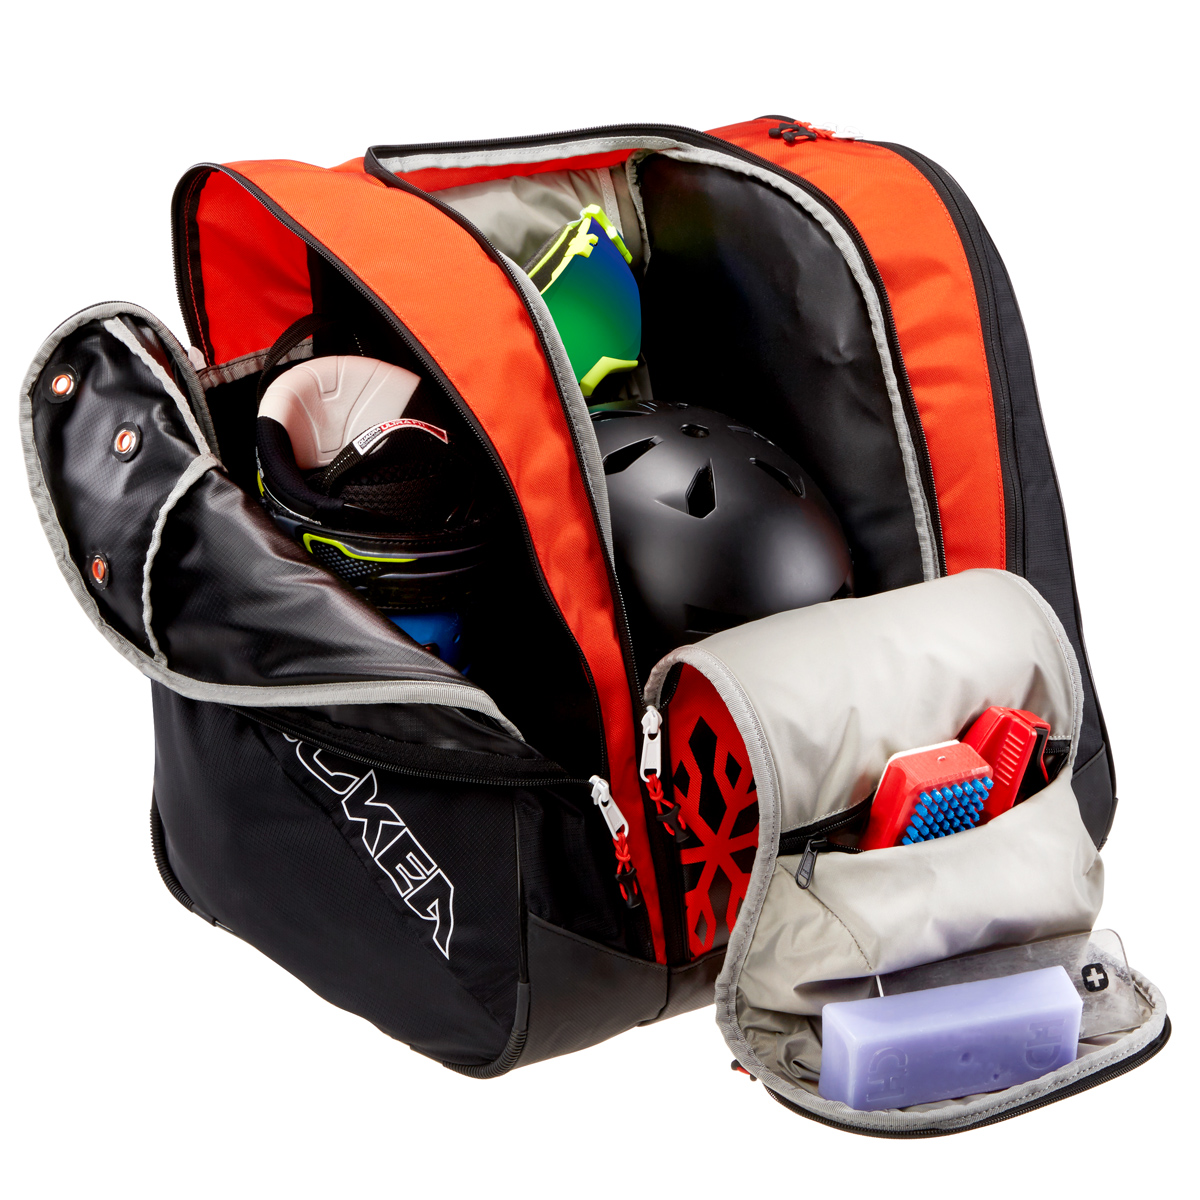 Kulkea Racer Red Ski Boot Bag Racing Storage